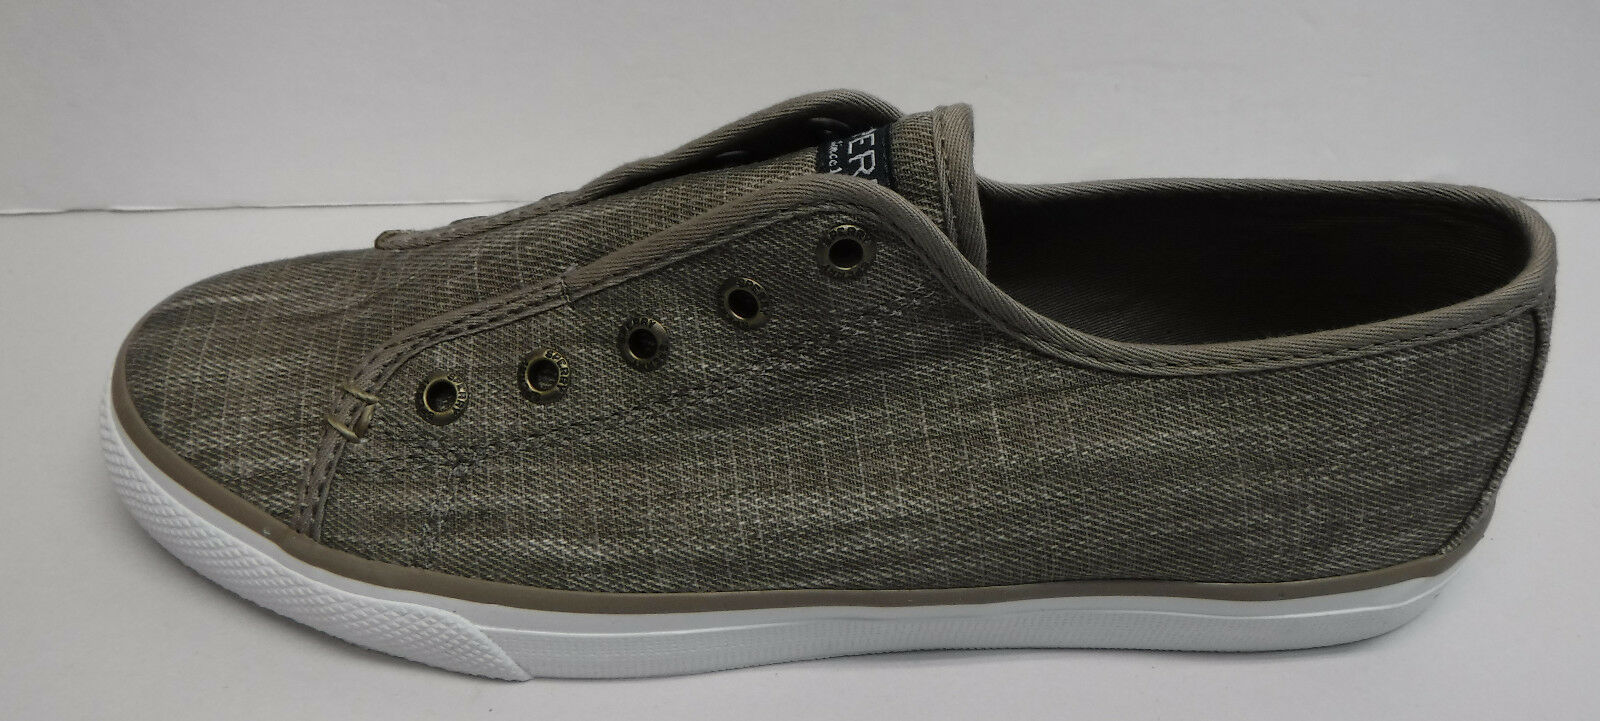 Sperry Size Top Sider Size Sperry Donna 9 Taupe New Donna Sperry scarpe 702994   c3301d